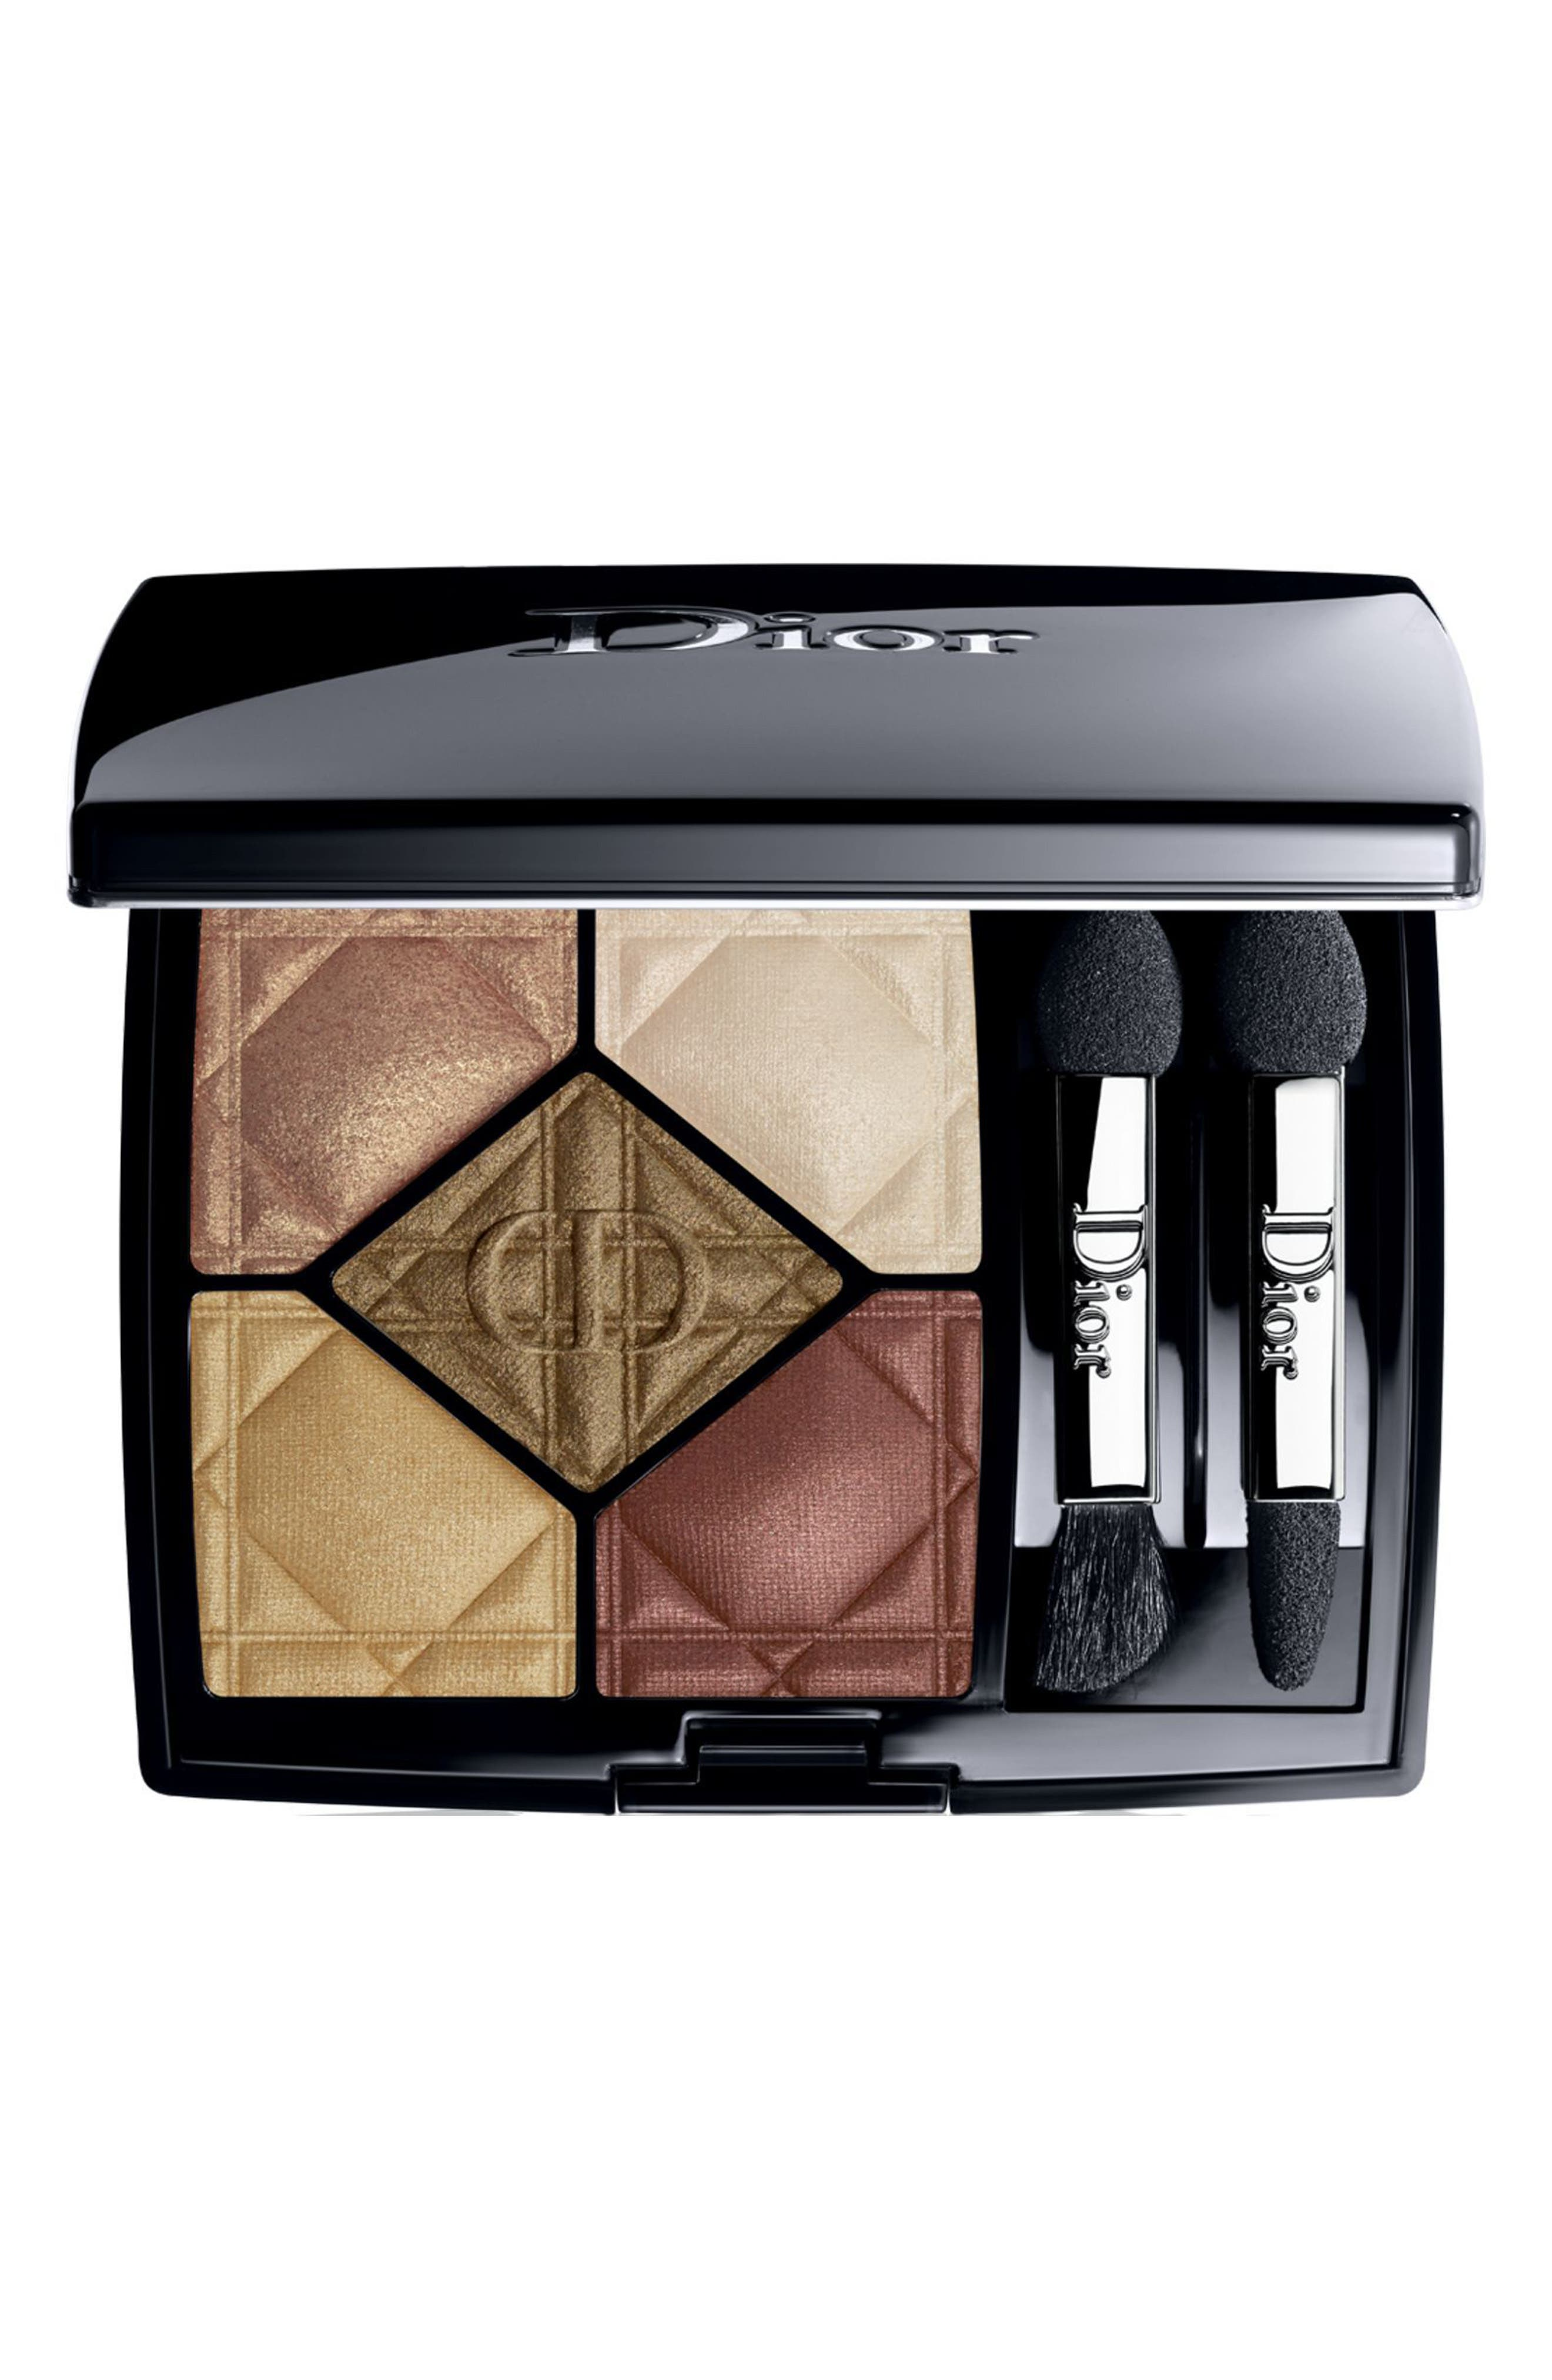 Dior 5 Couleurs Couture Eyeshadow Palette - 657 Expose